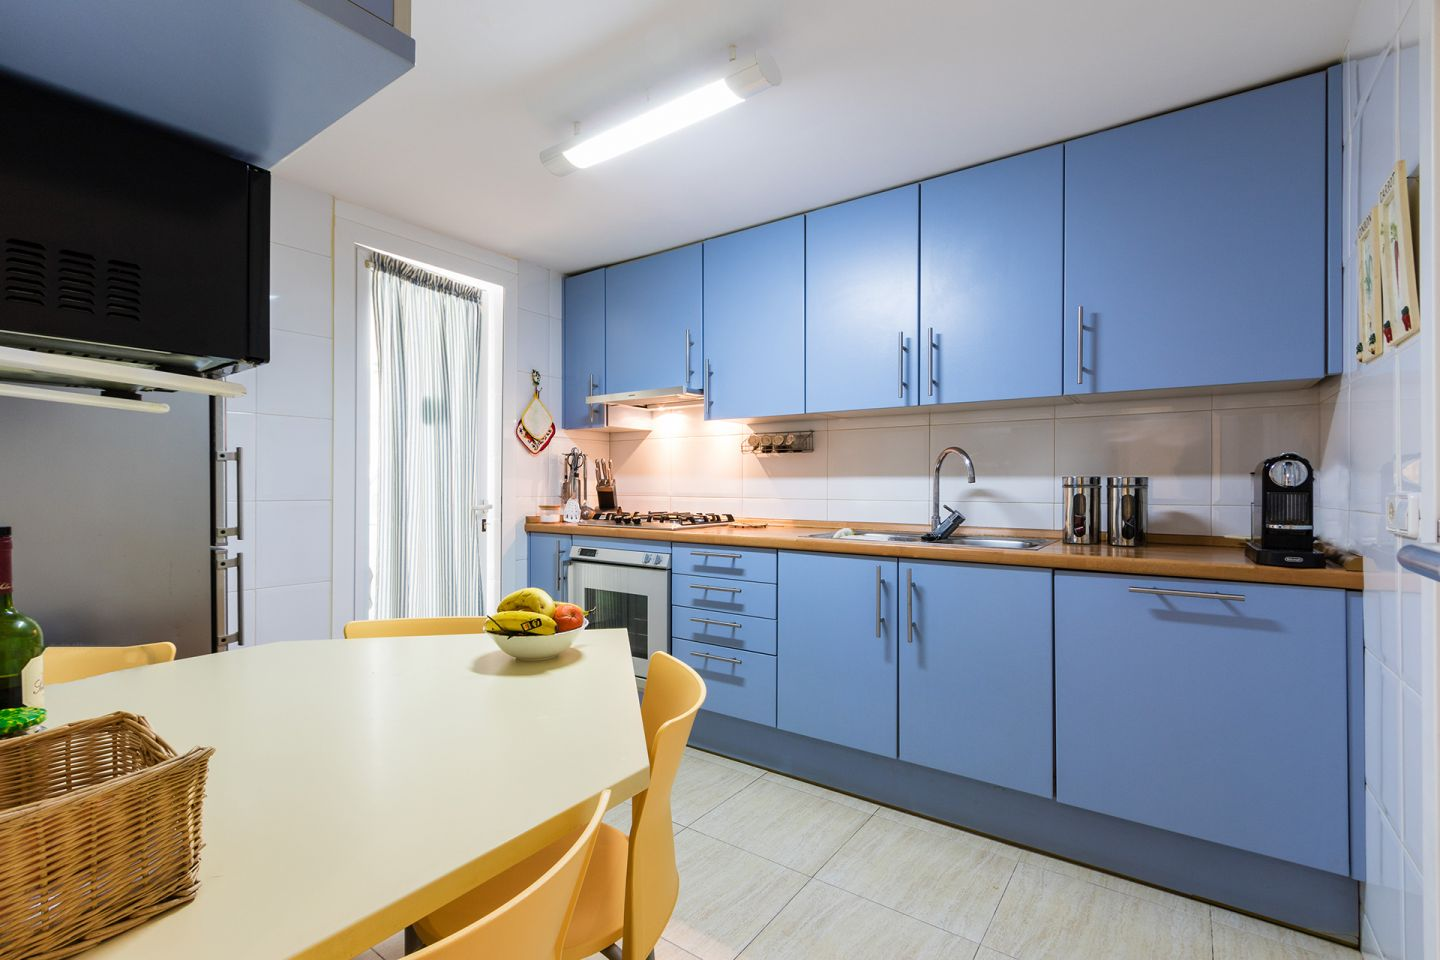 4 Bed Semidetached House for sale in PUERTO POLLENSA 3